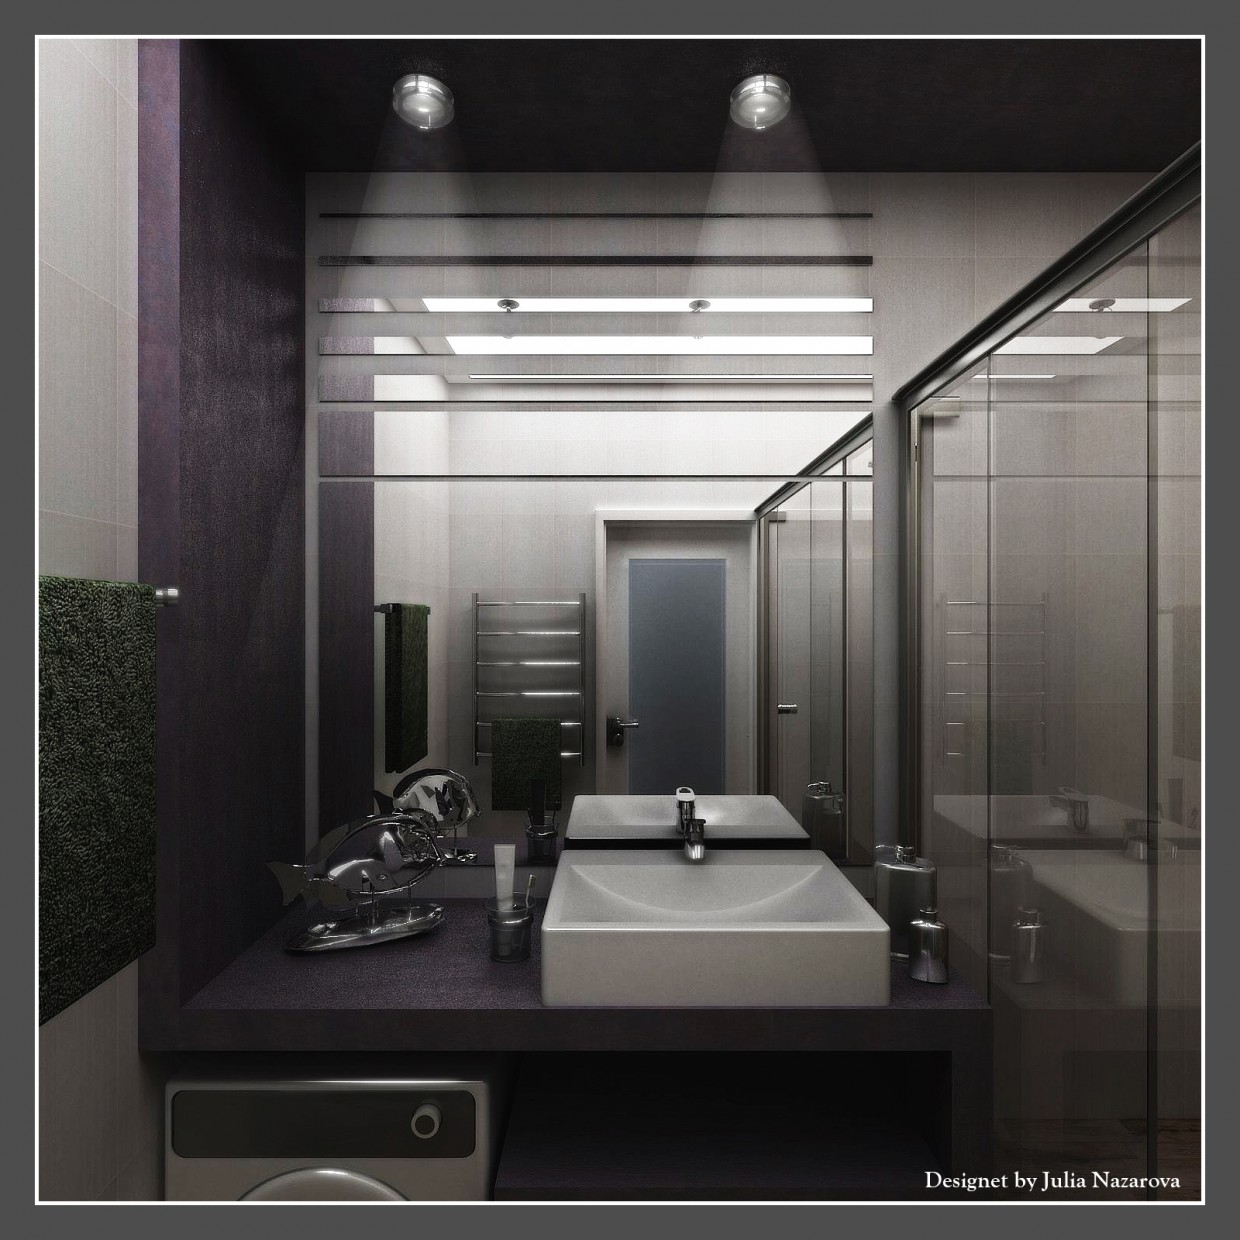 Bathroom. in 3d max vray 2.5 image